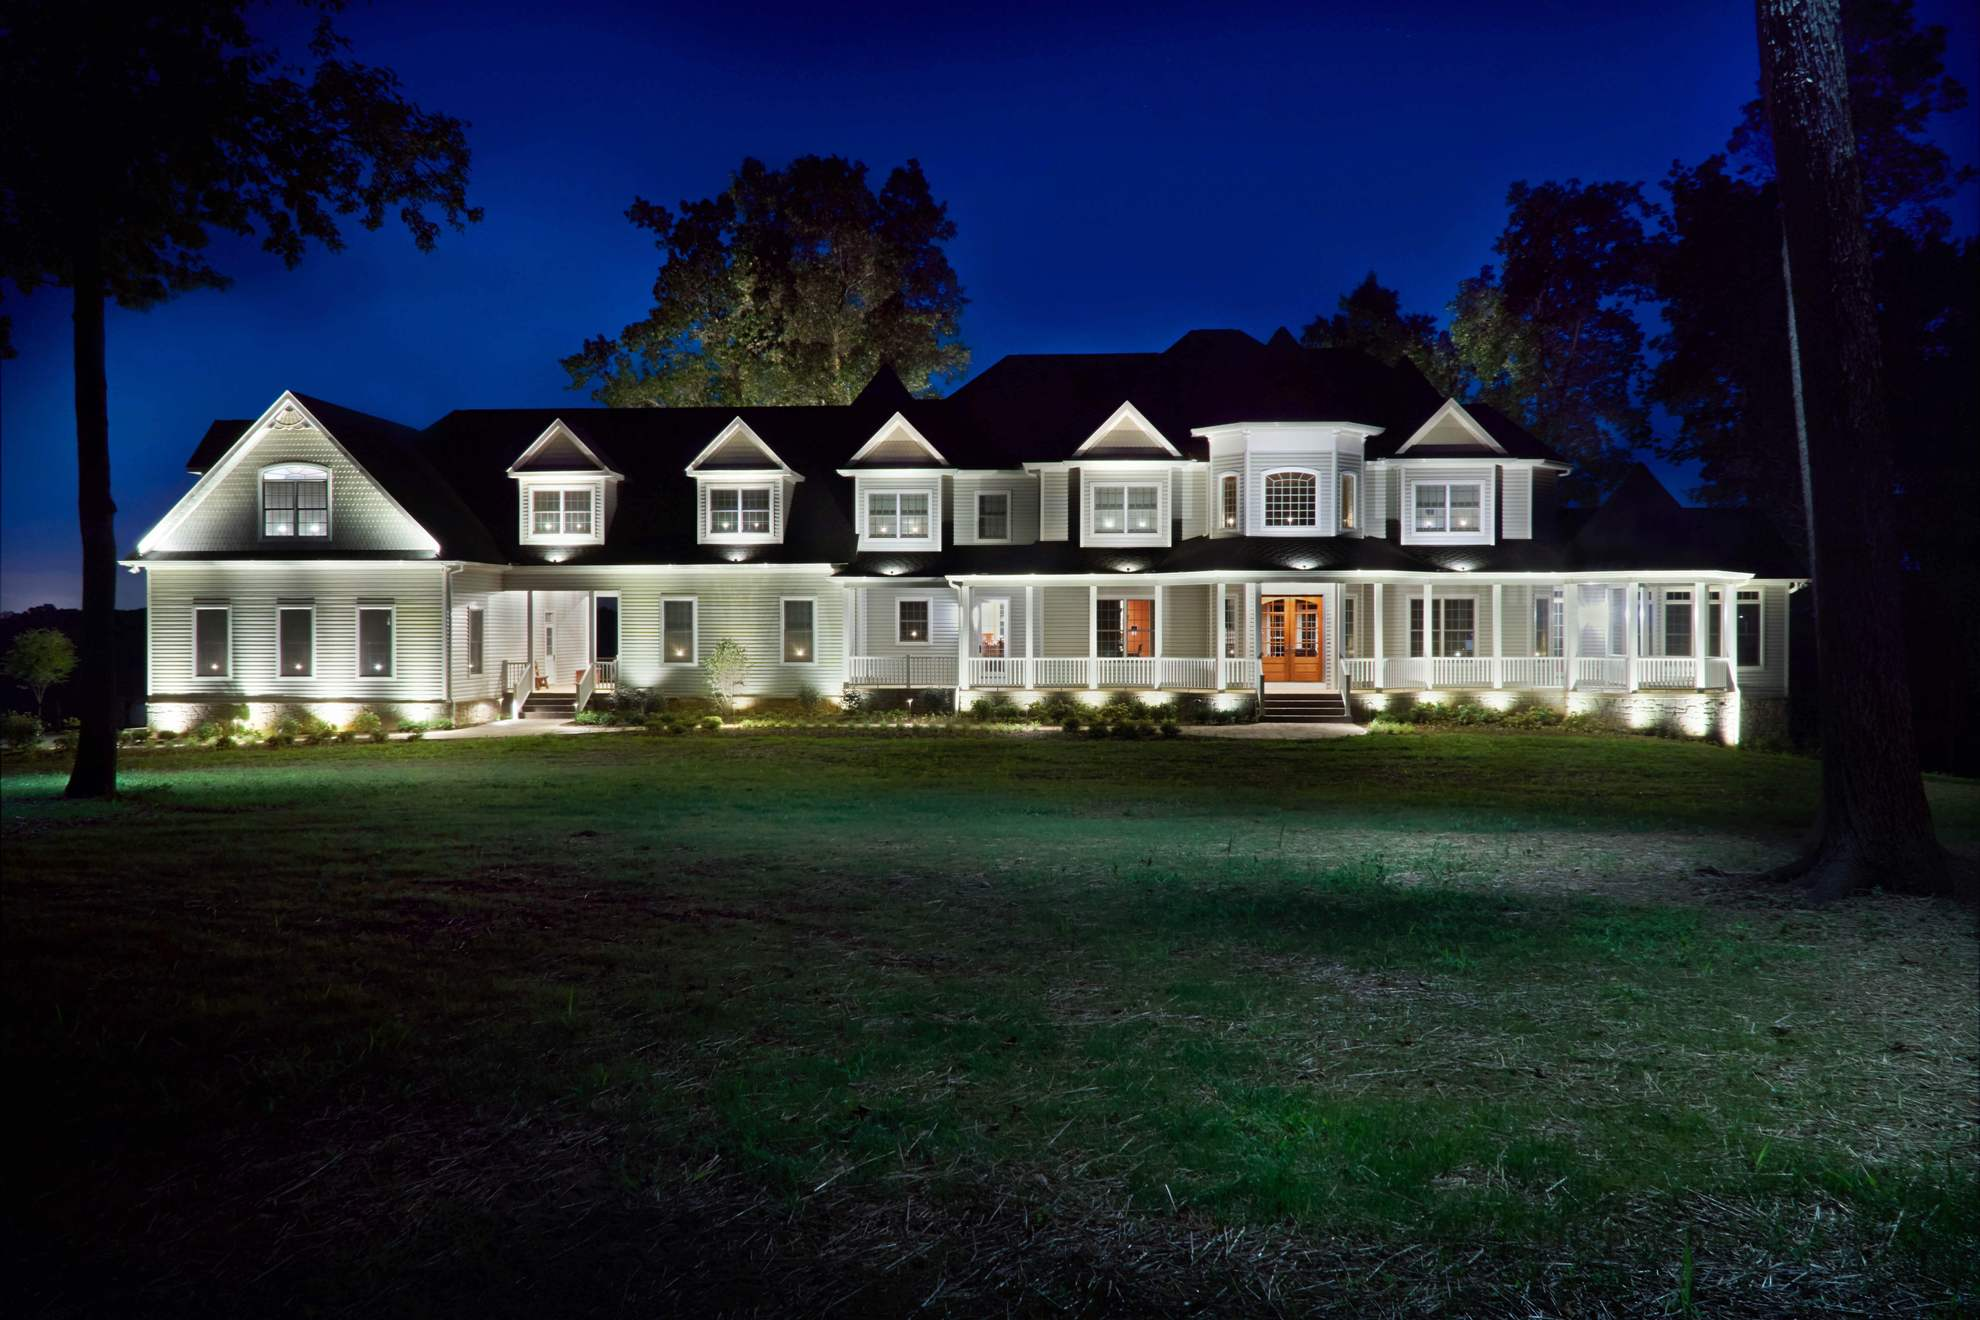 Exterior night shot of home lighting project by Chesapeake Irrigation & Lighting